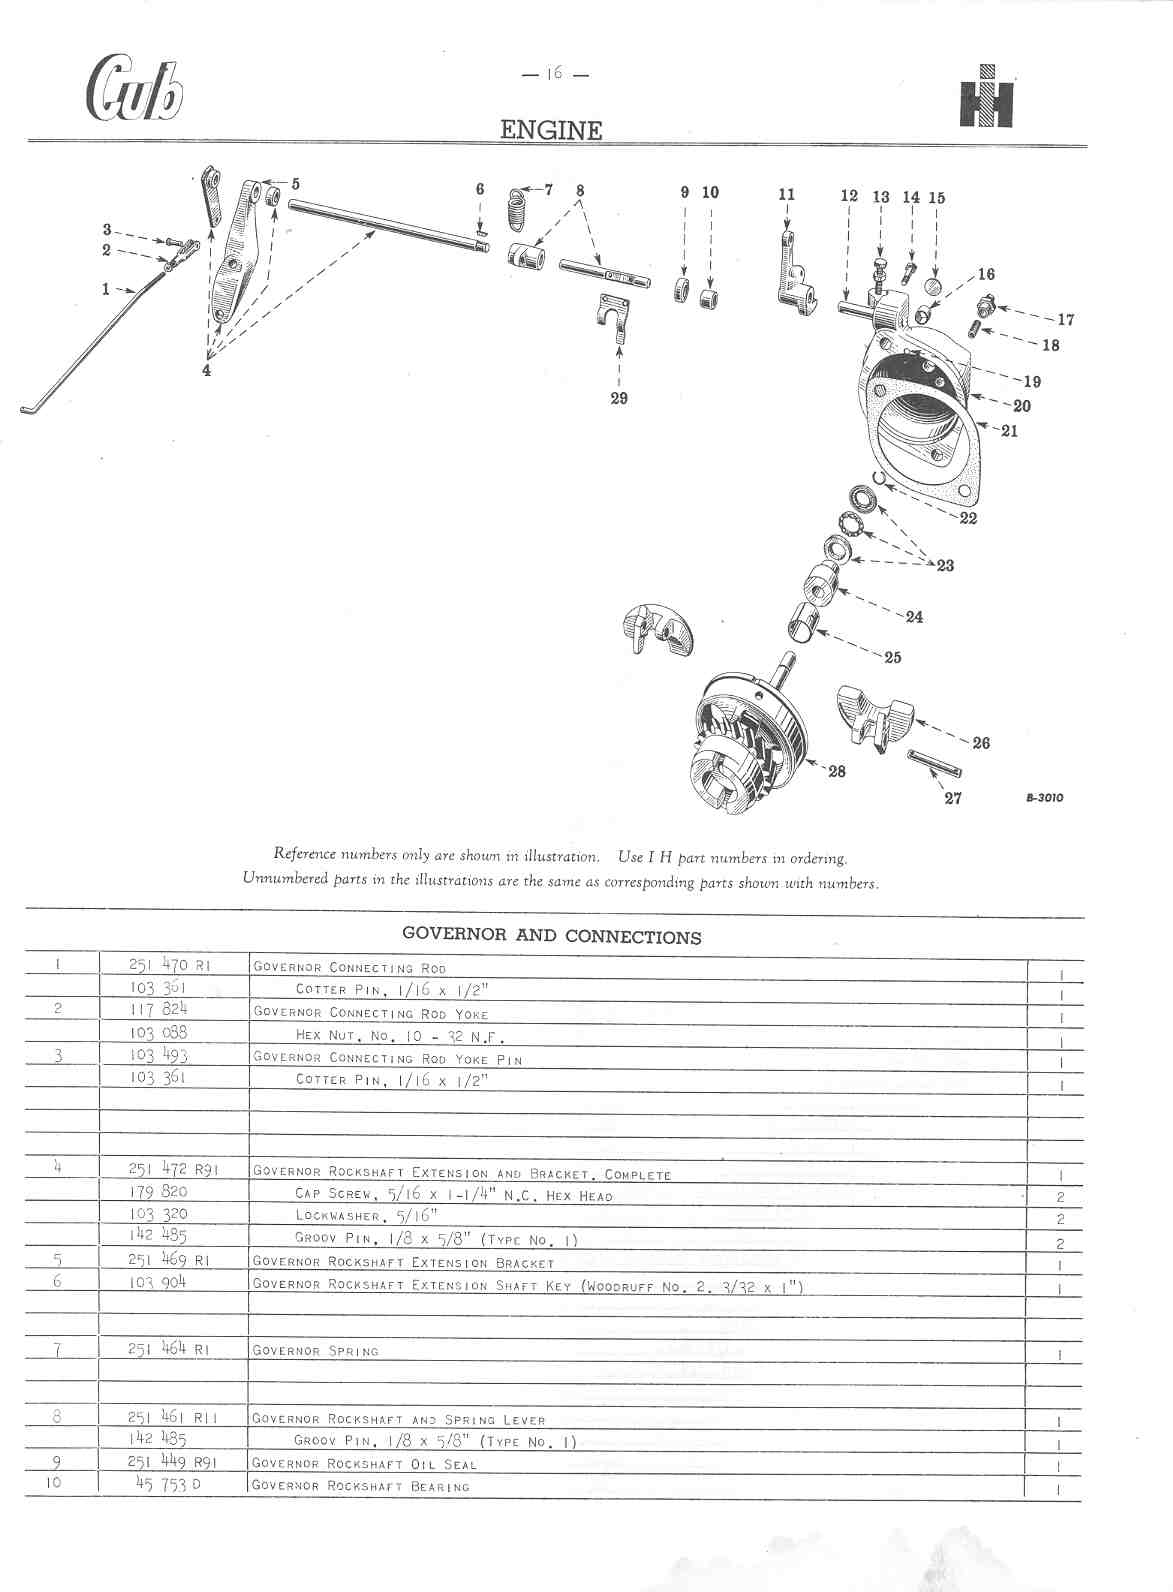 hight resolution of farmall super c governor diagram farmall free engine farmall h governor exploded view farmall h governor rebuild kit